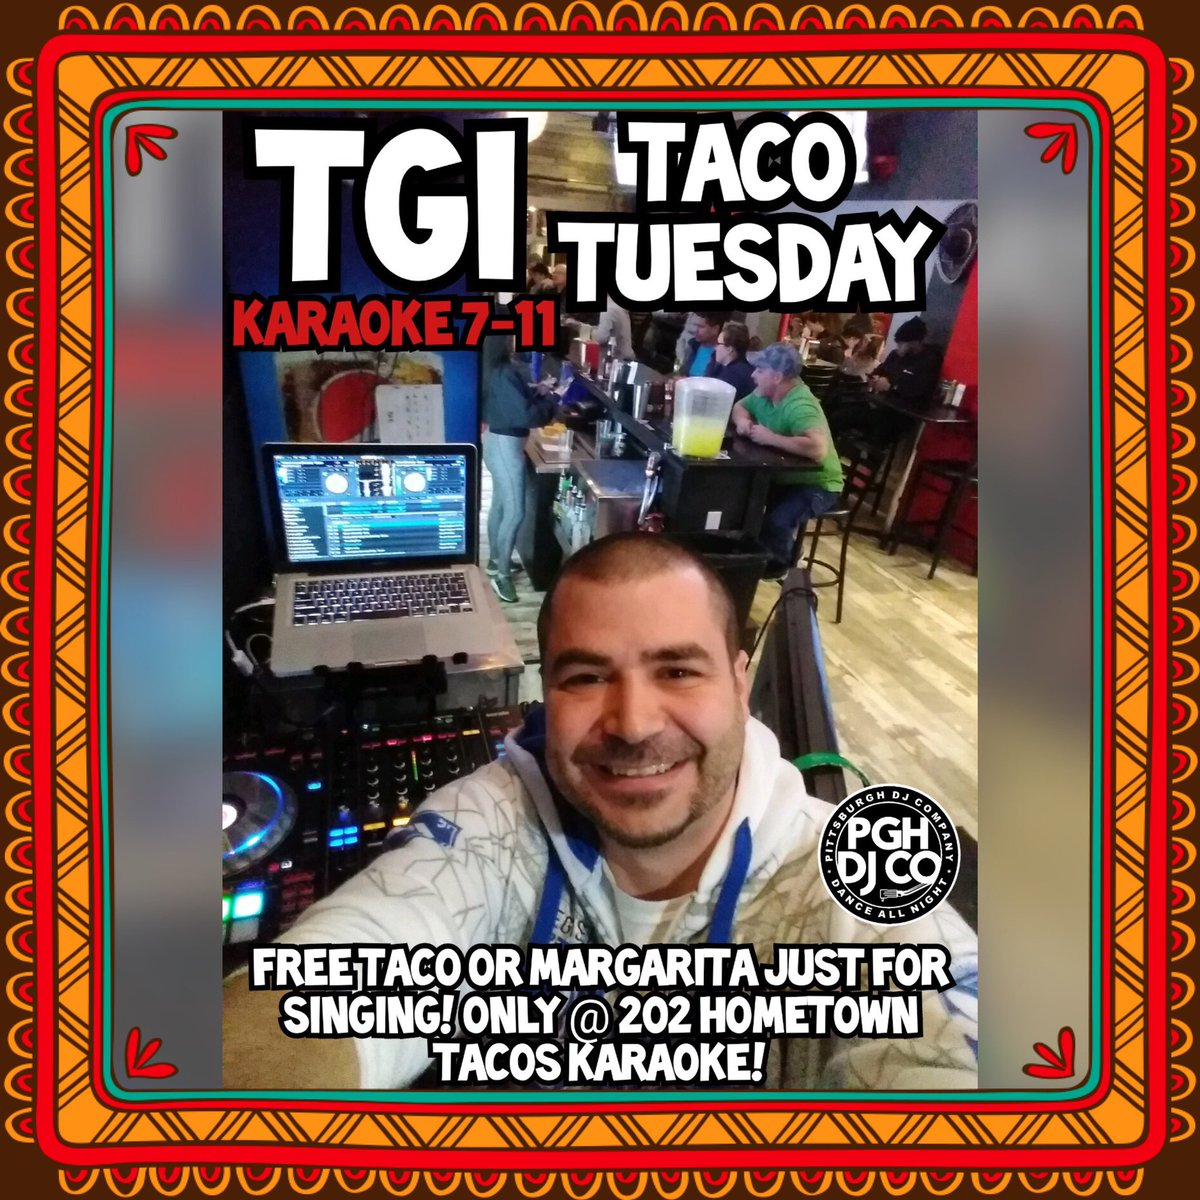 #202hometowntacos is the place to be #tonight for #tacotuesdaykaraoke ! Come sing and get a #freetaco or #freemargarita #DJ Hustle and Pittsburgh DJ Co! #pittsburghdj #pittsburghkaraoke #pittsburghtacospic.twitter.com/2oKCjPpfrI – at 202 Hometown Tacos